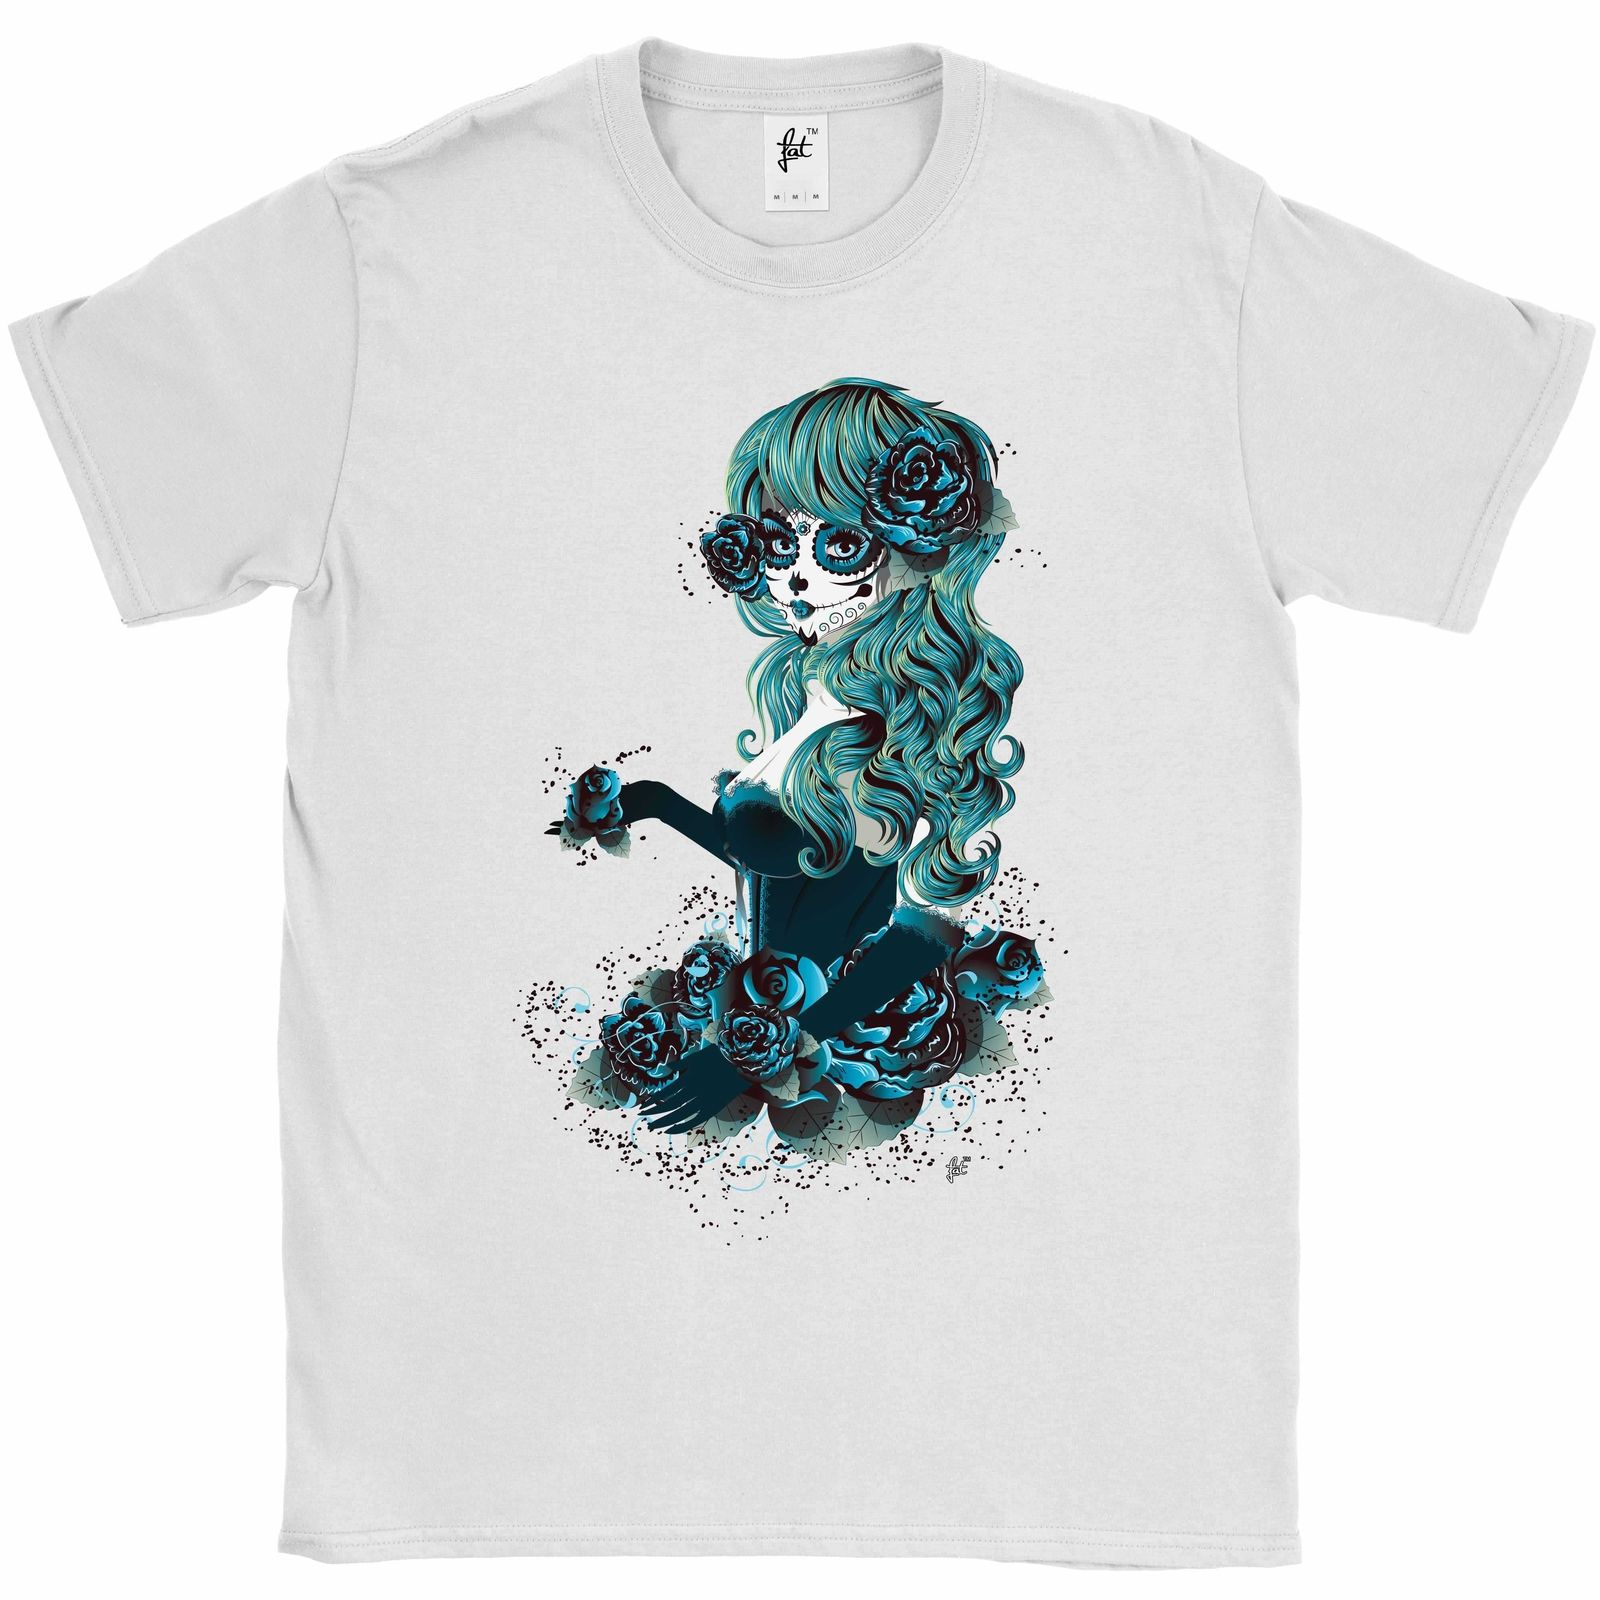 Day Of The Dead Sugar Skull Woman With Long Hair Mens T-Shirt